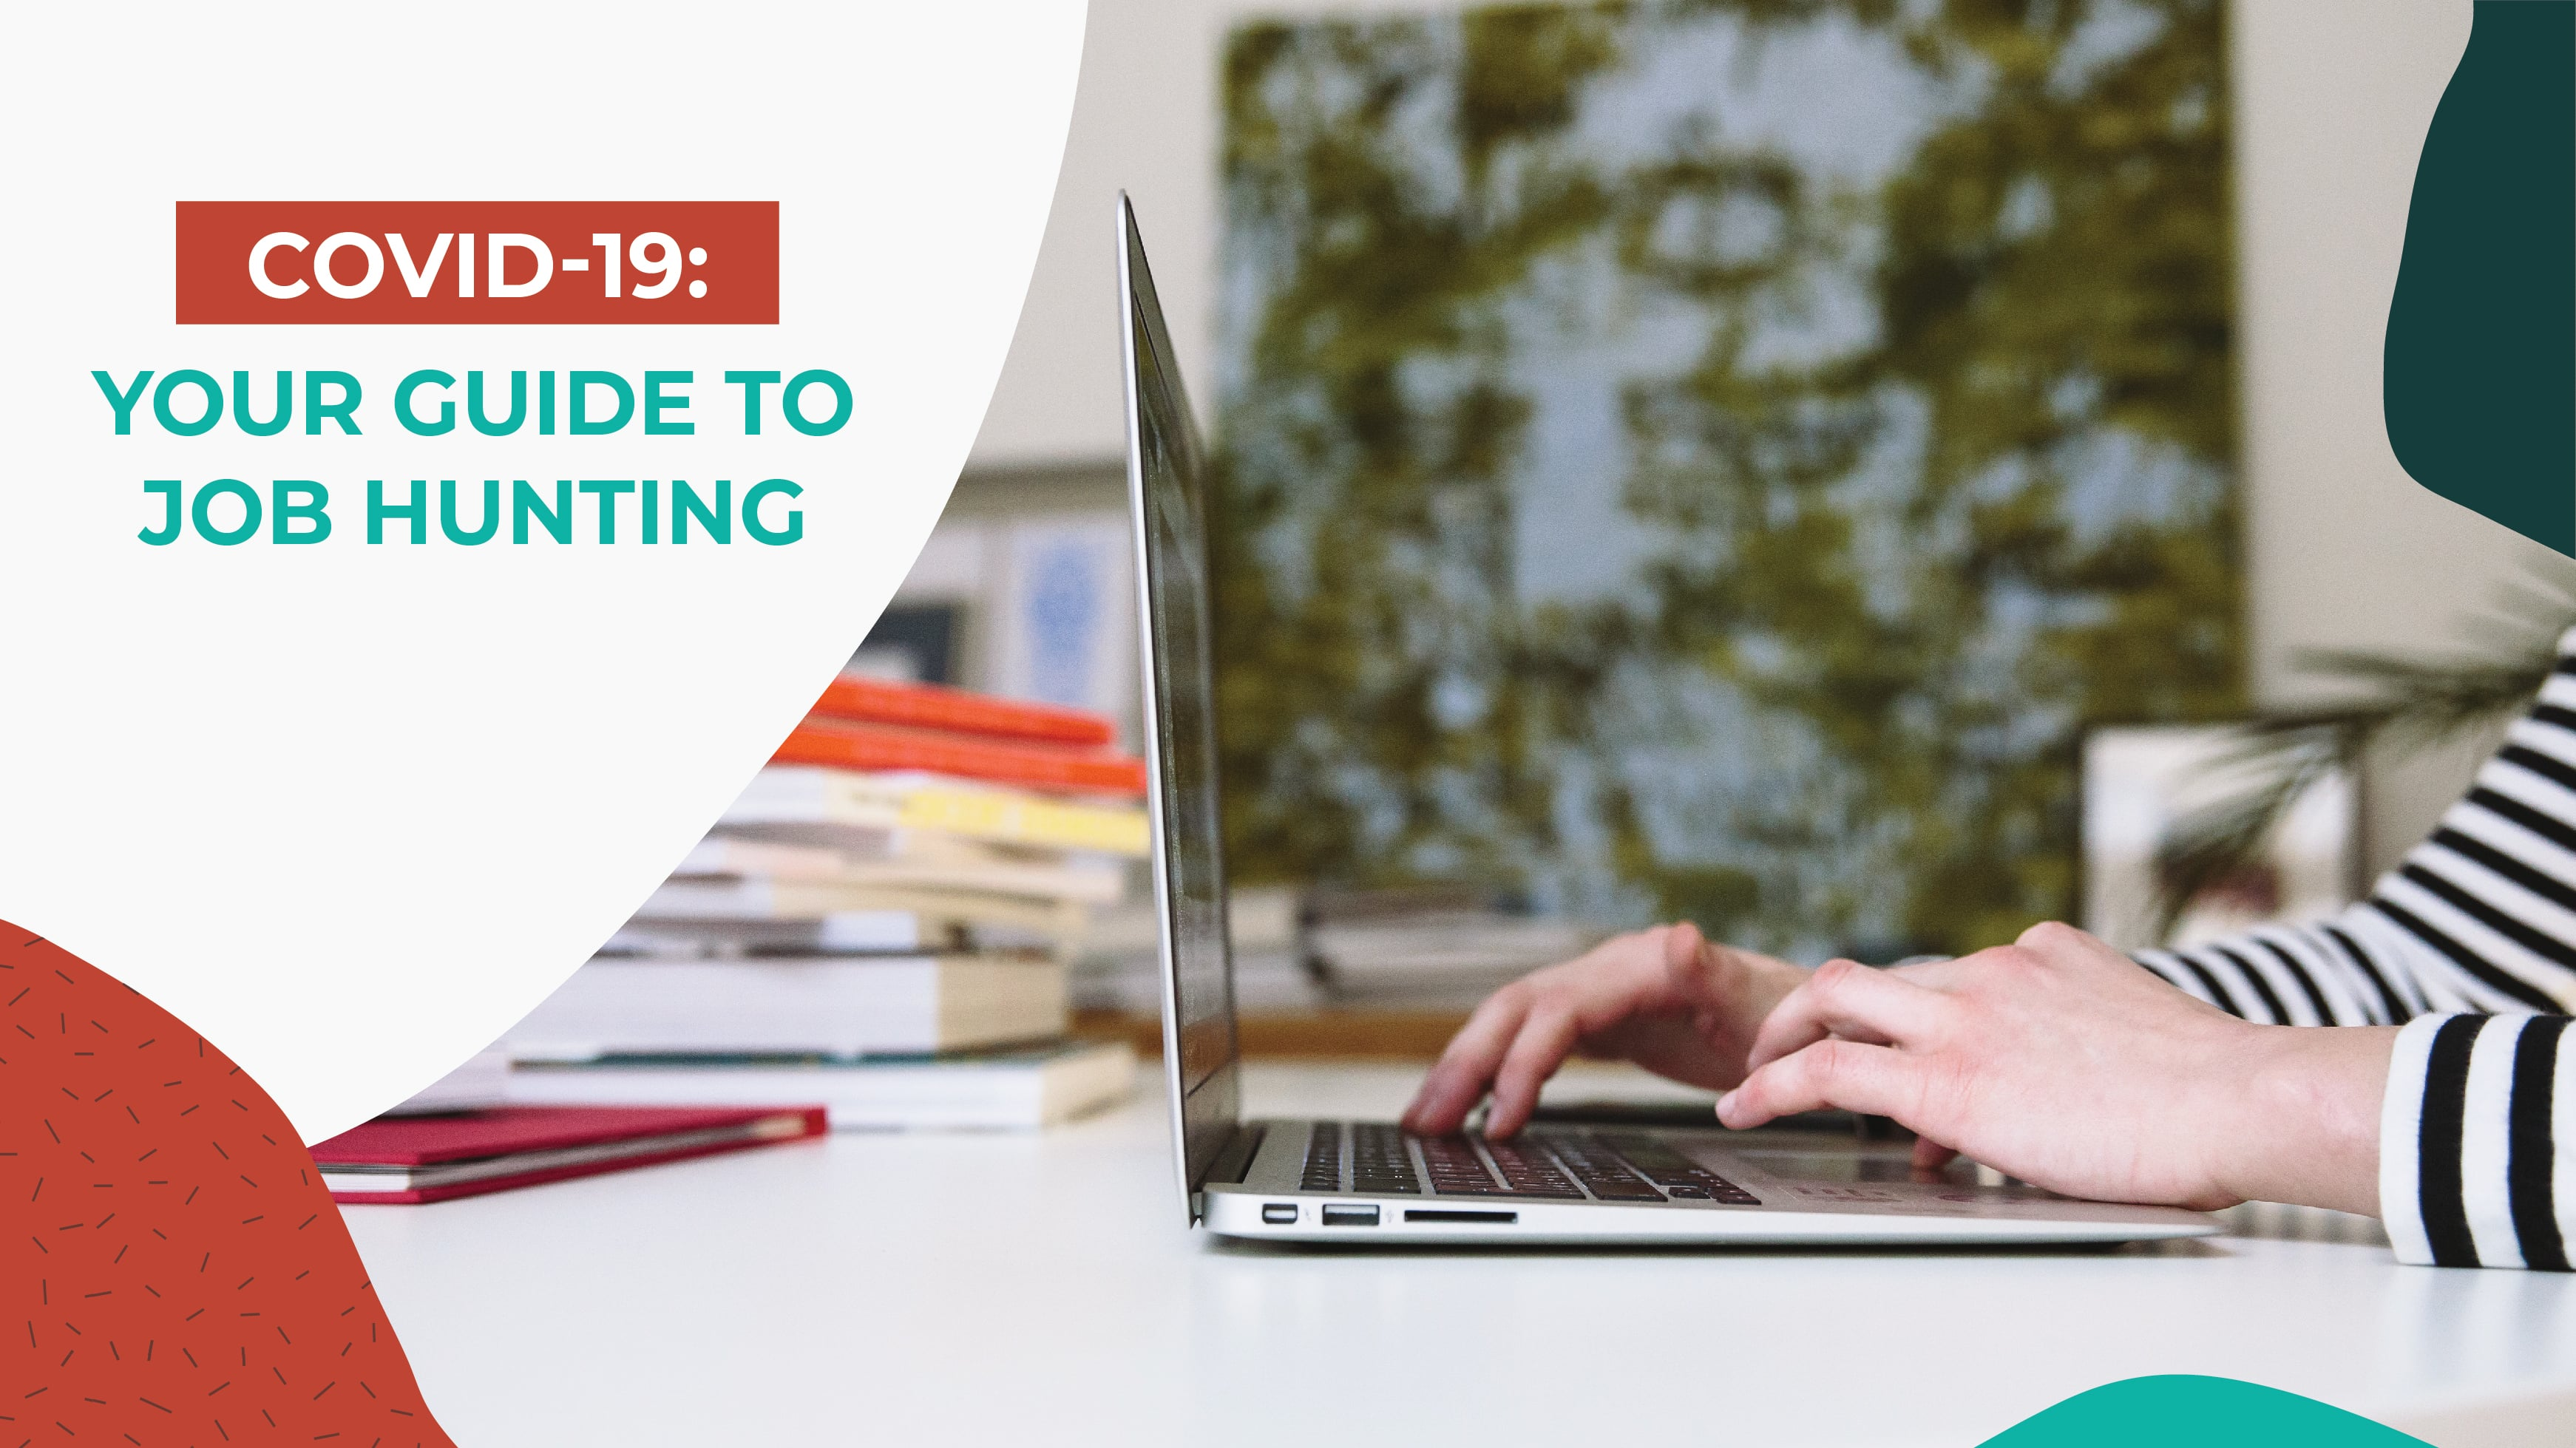 Covid19 Your Guide to Job Hunting